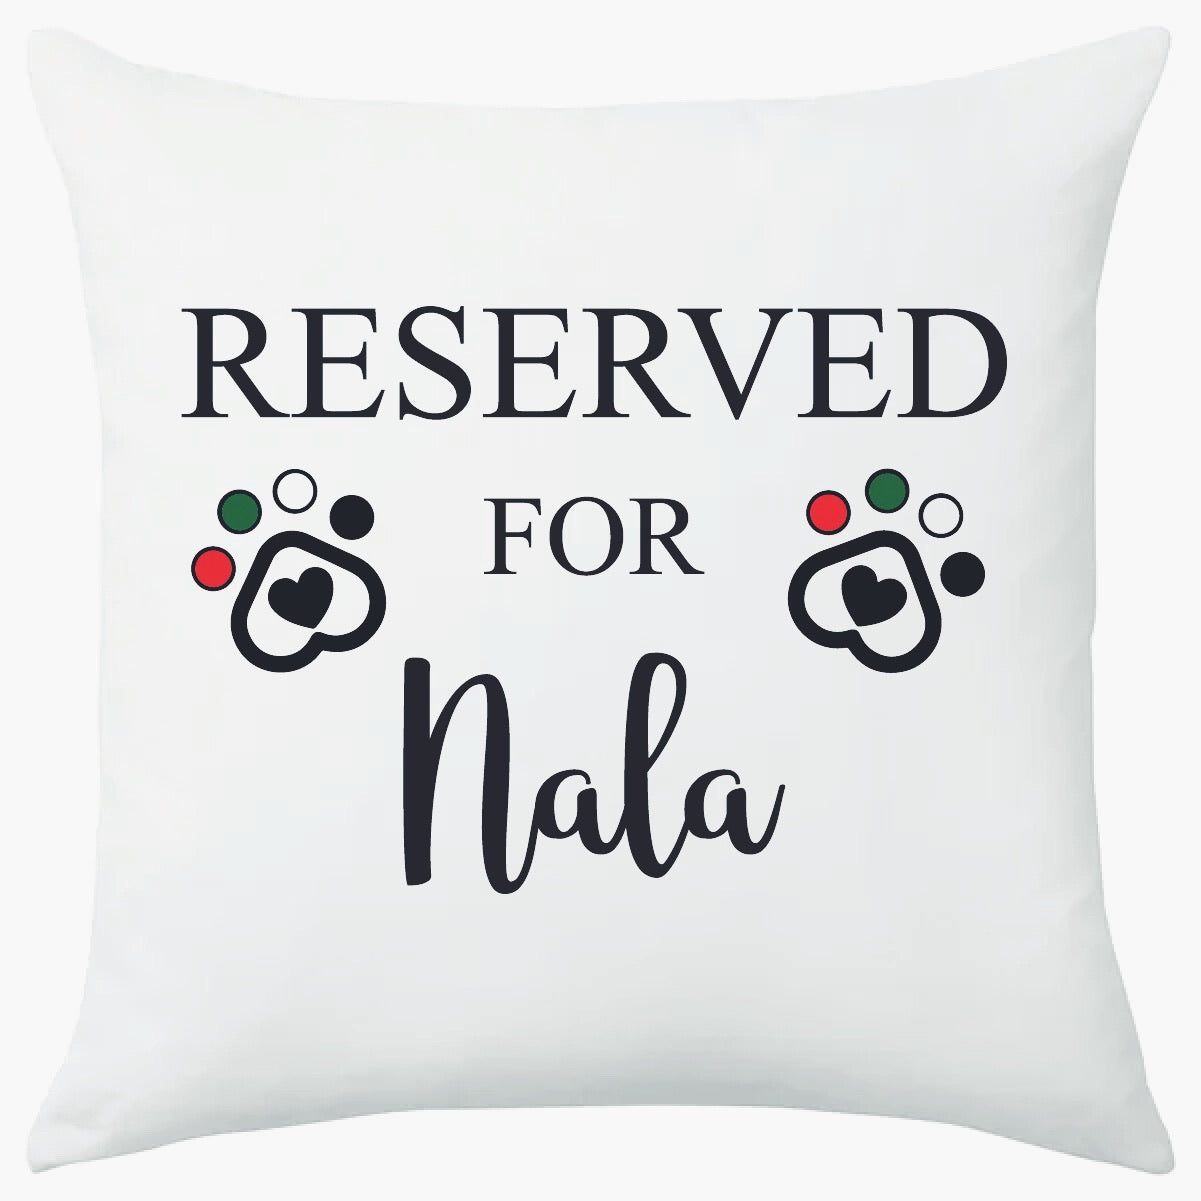 Reserved for...